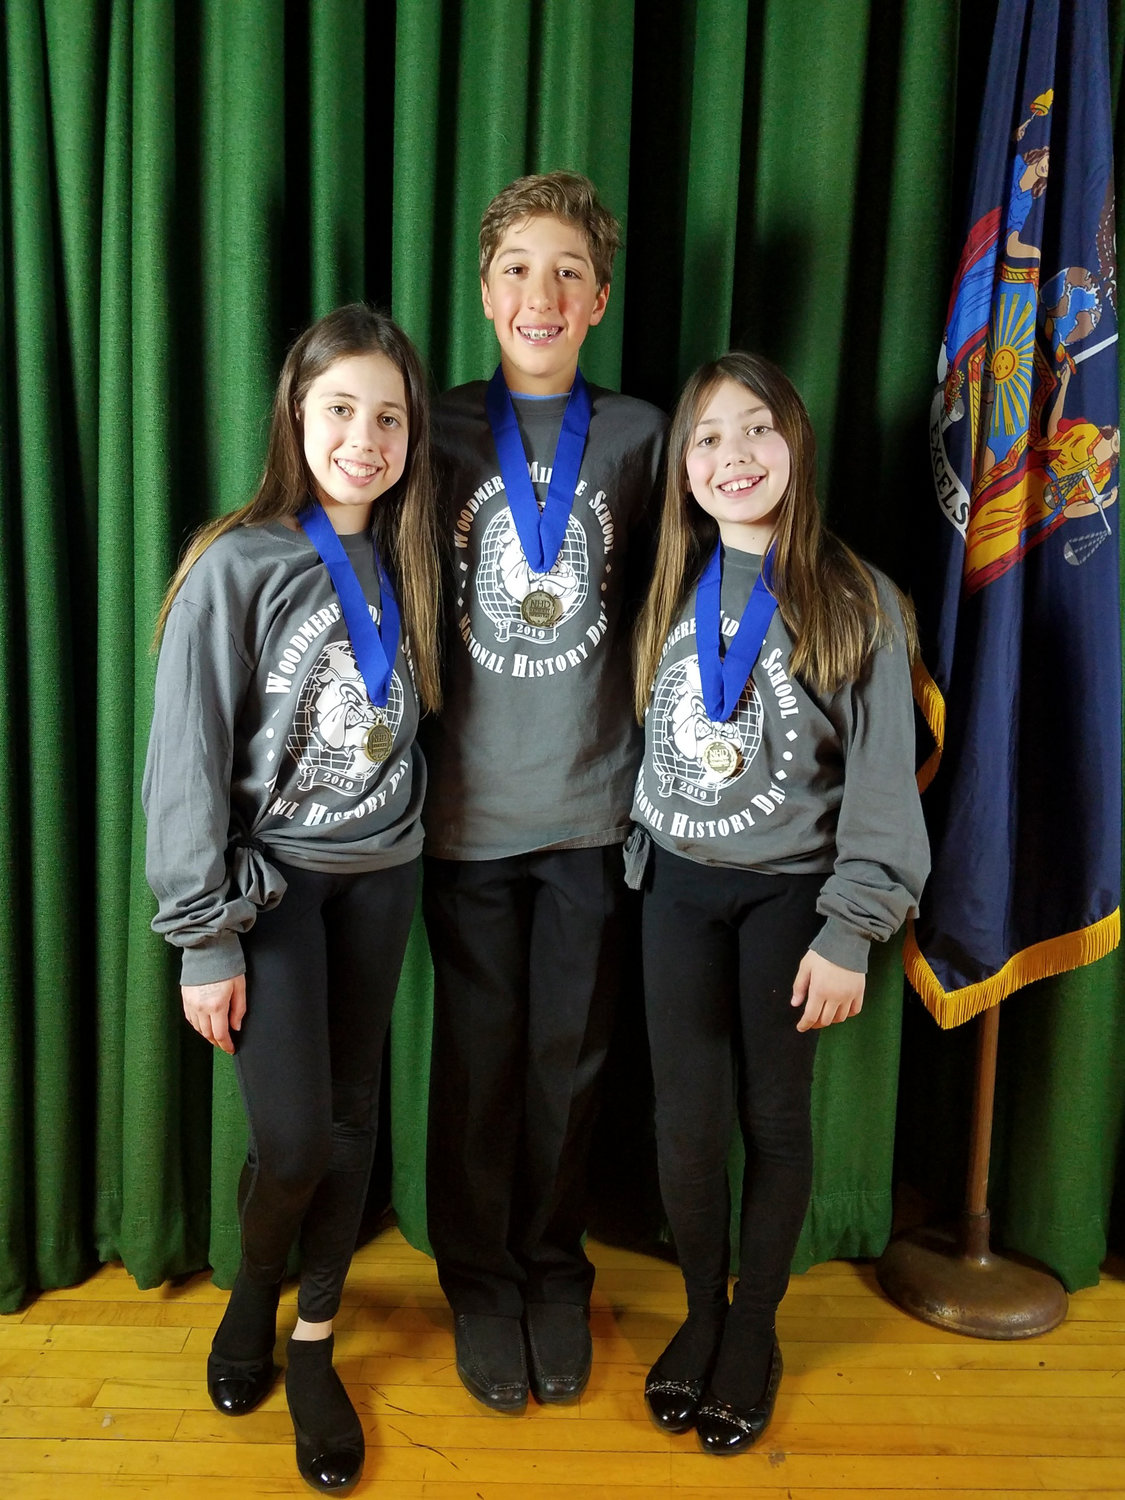 Woodmere Middle School students Sidney Honig, Michael Heyman and Harley Honig advanced to the national level of the History Day competition.